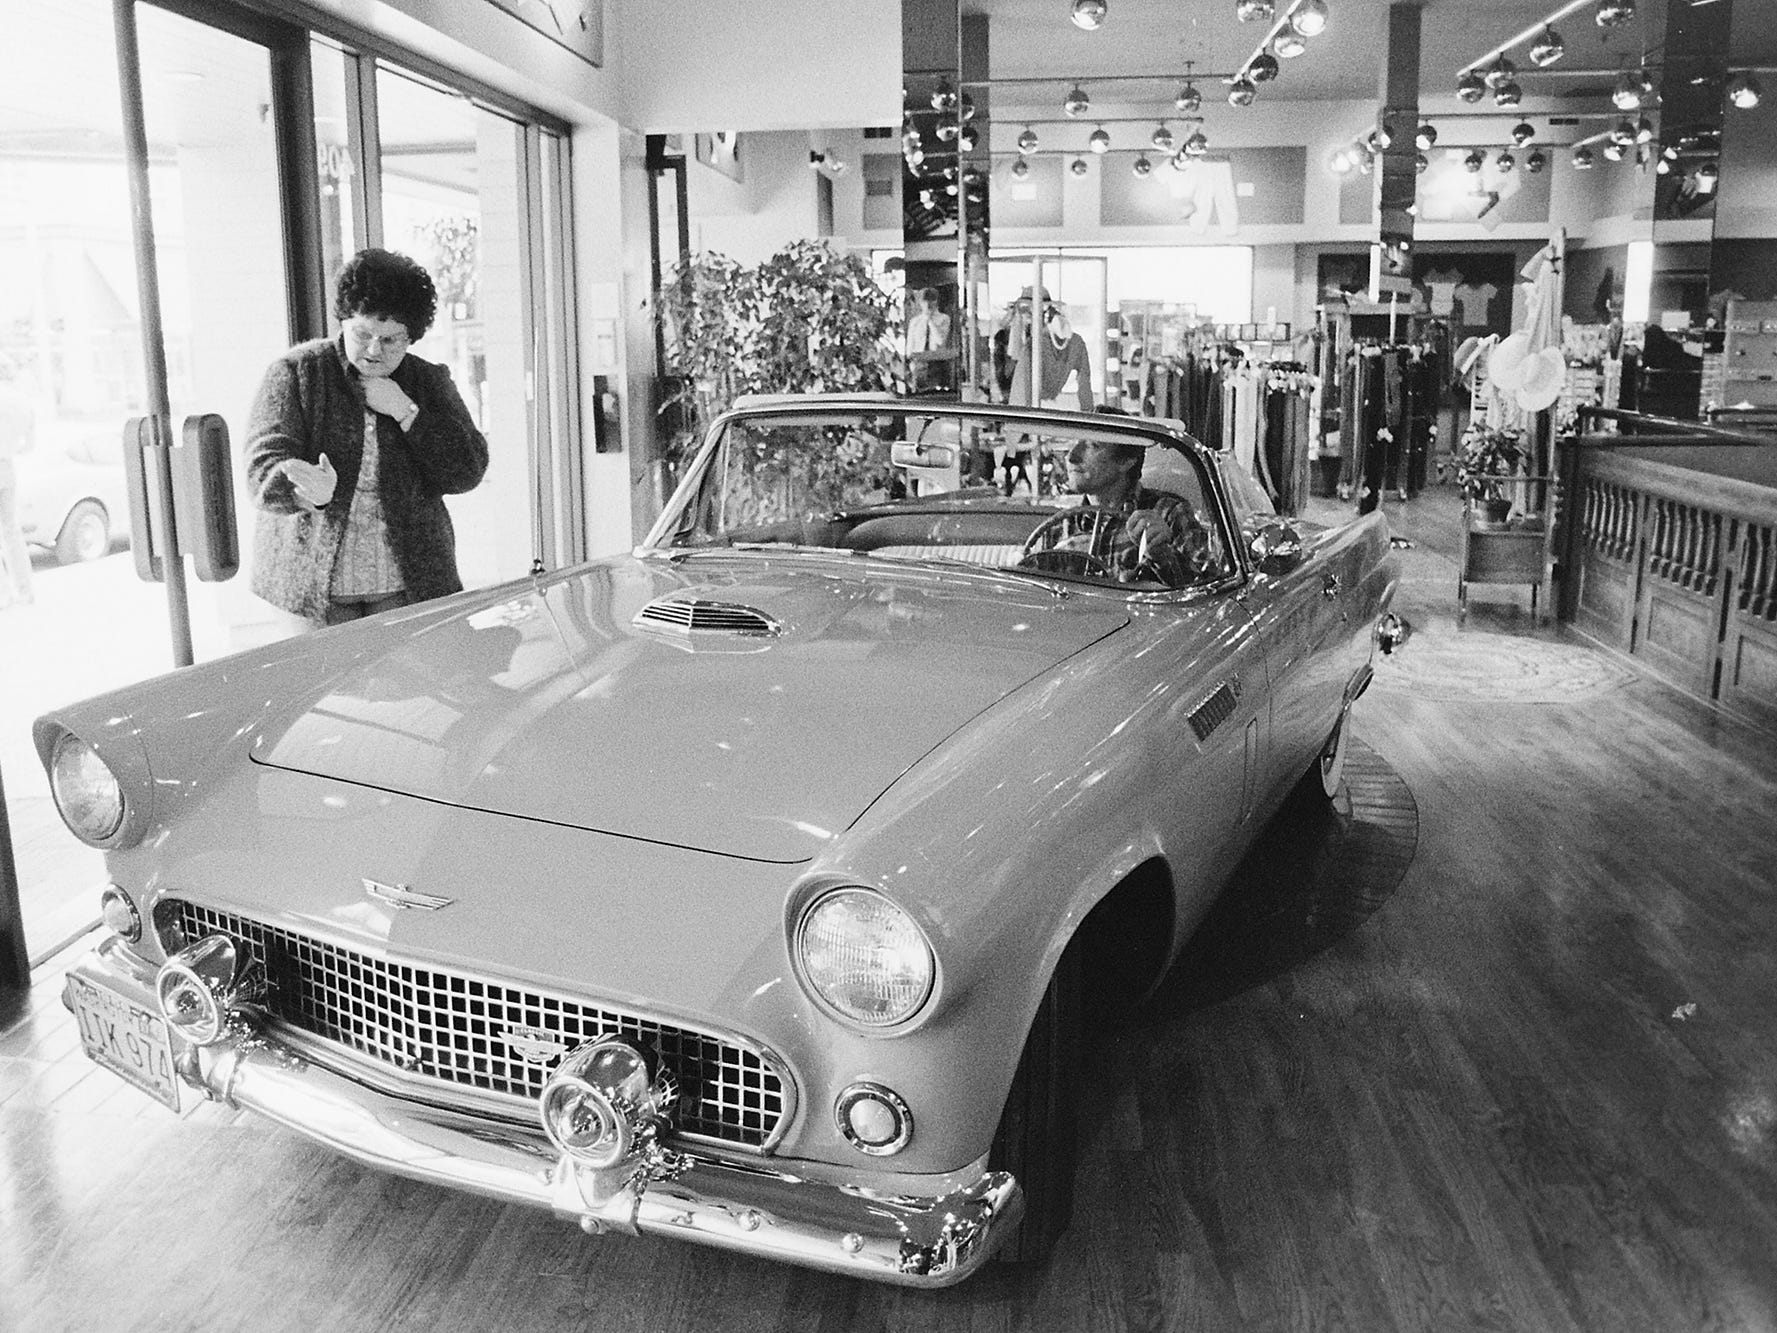 01/26/84